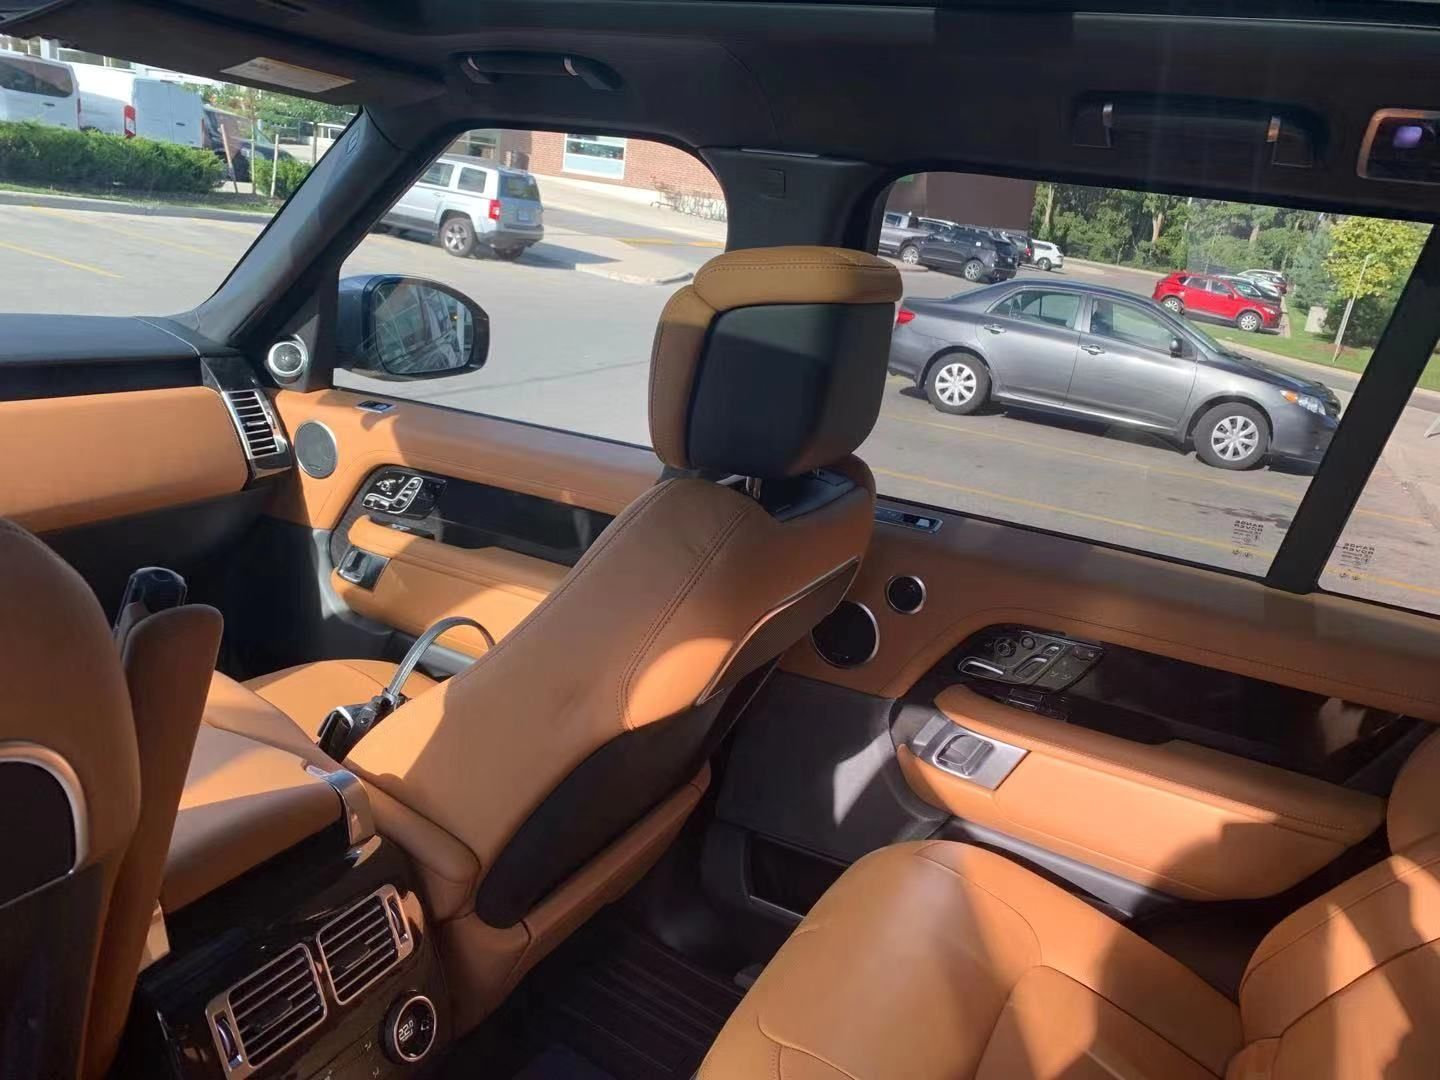 2020 Land Rover Range Rover P525 autobiography swb - INFOCAR - Toronto's Most Comprehensive New and Used Auto Trading Platform